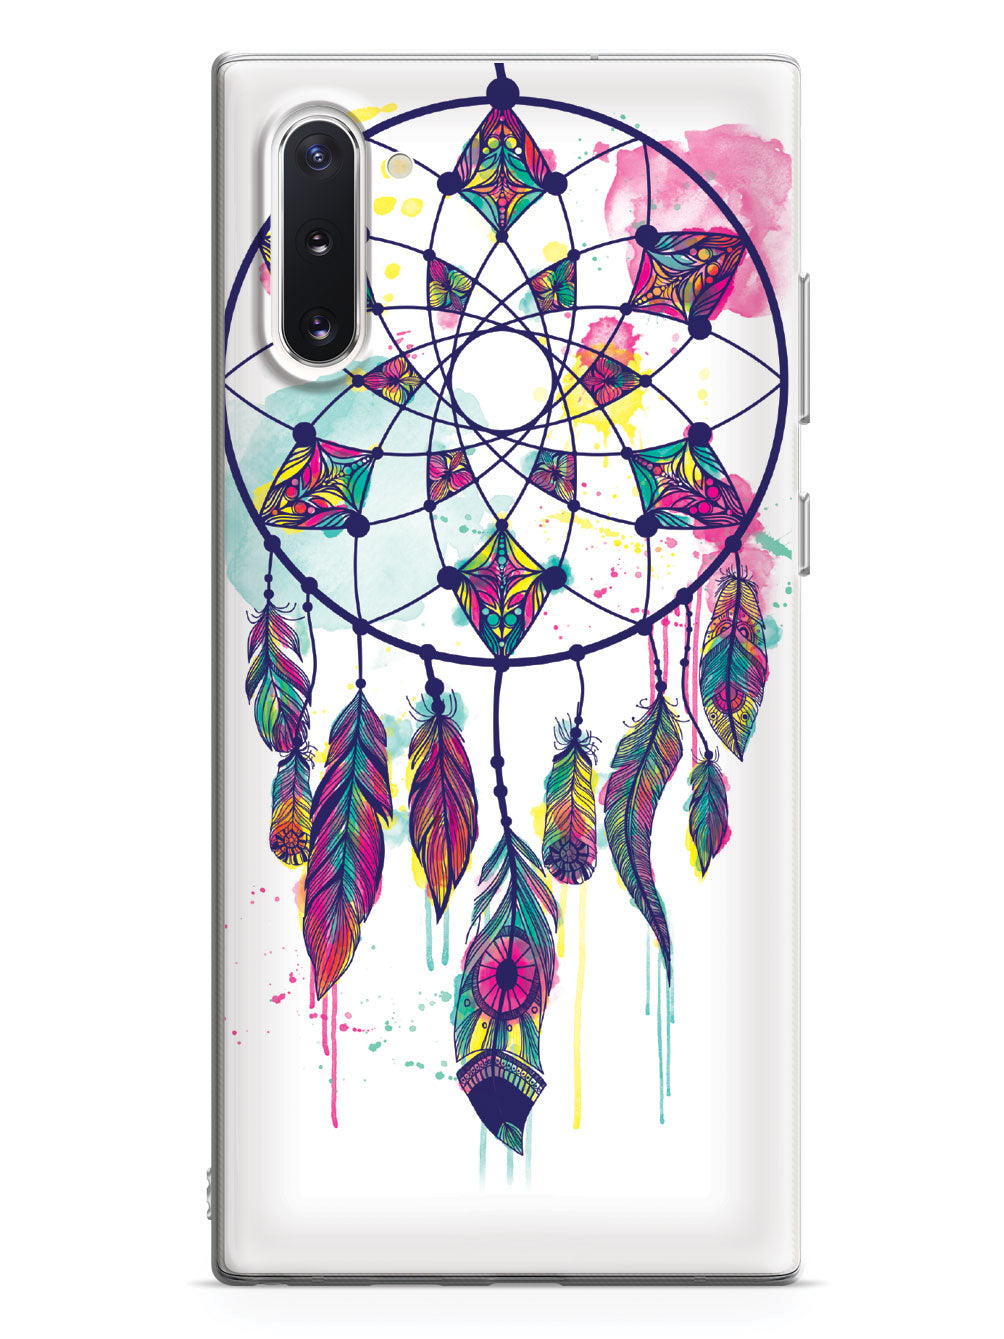 Watercolorful Dreamcatcher - White Case